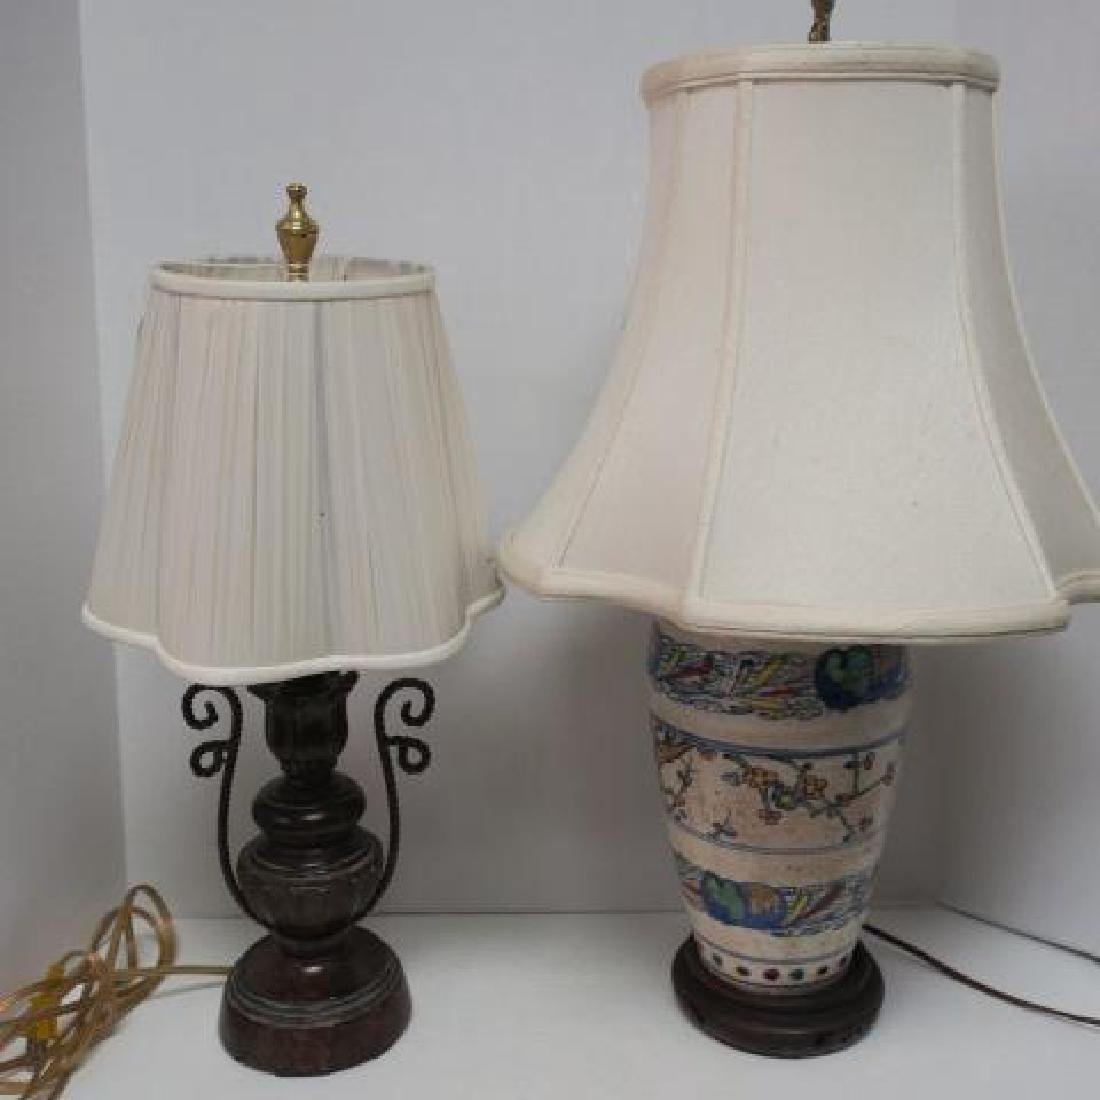 Two Table Lamps, Pottery and Handled Composition: